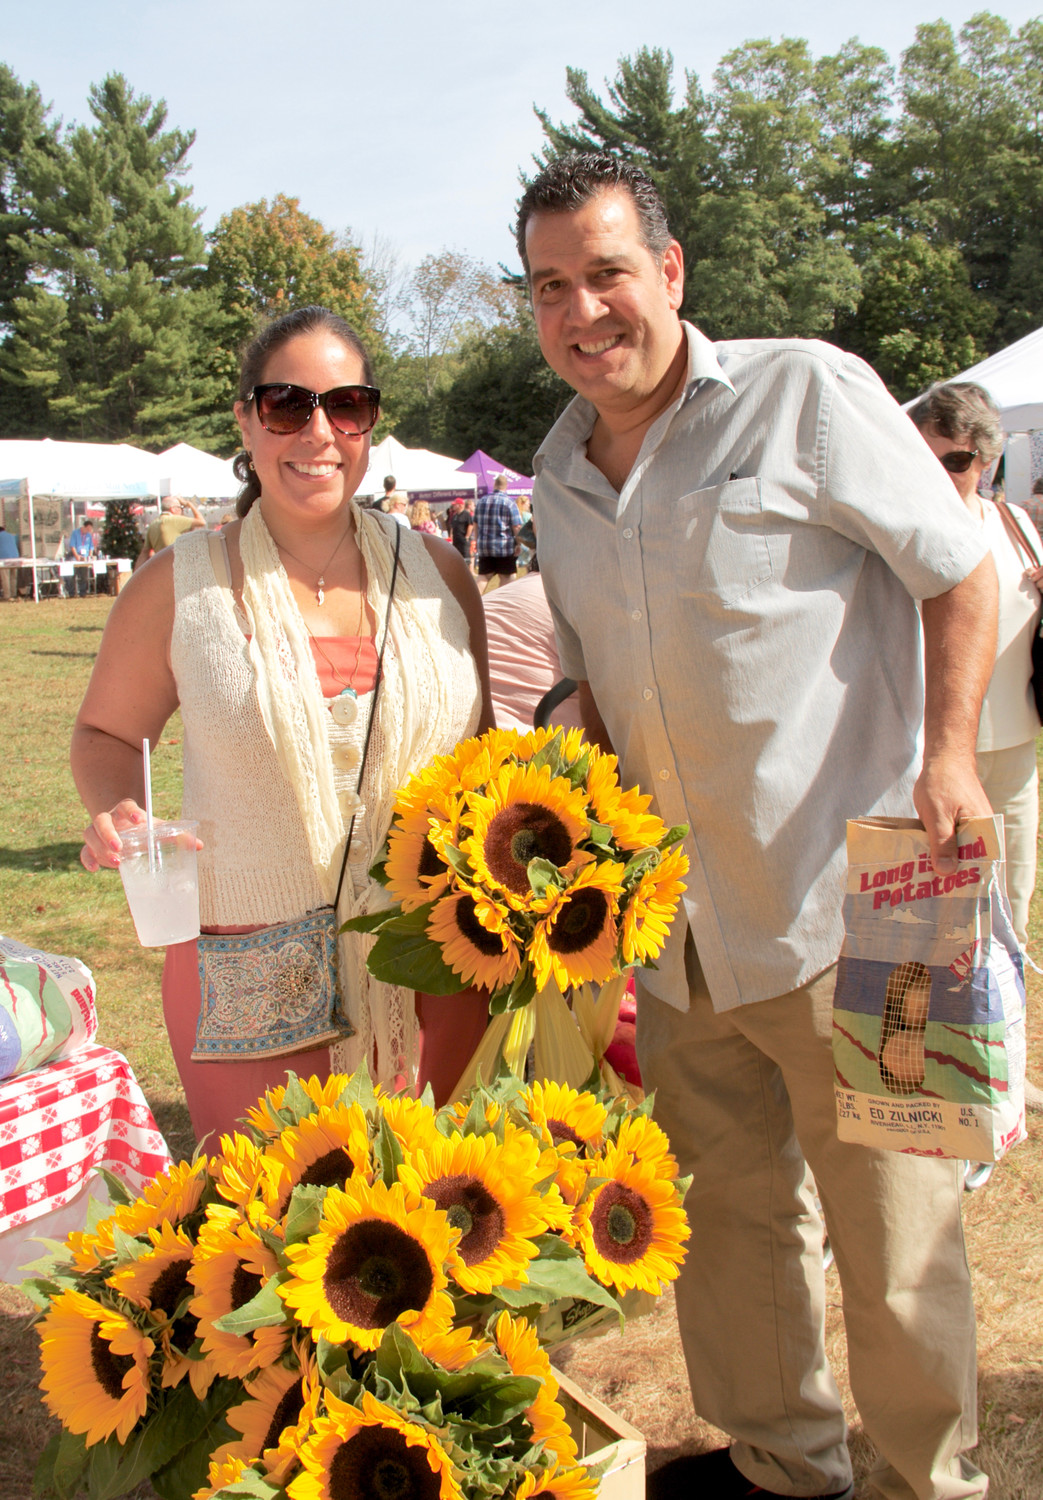 Lindsay and Michael Scaperottoa love attending the Mill Neck Manor's Apple Festival every year.